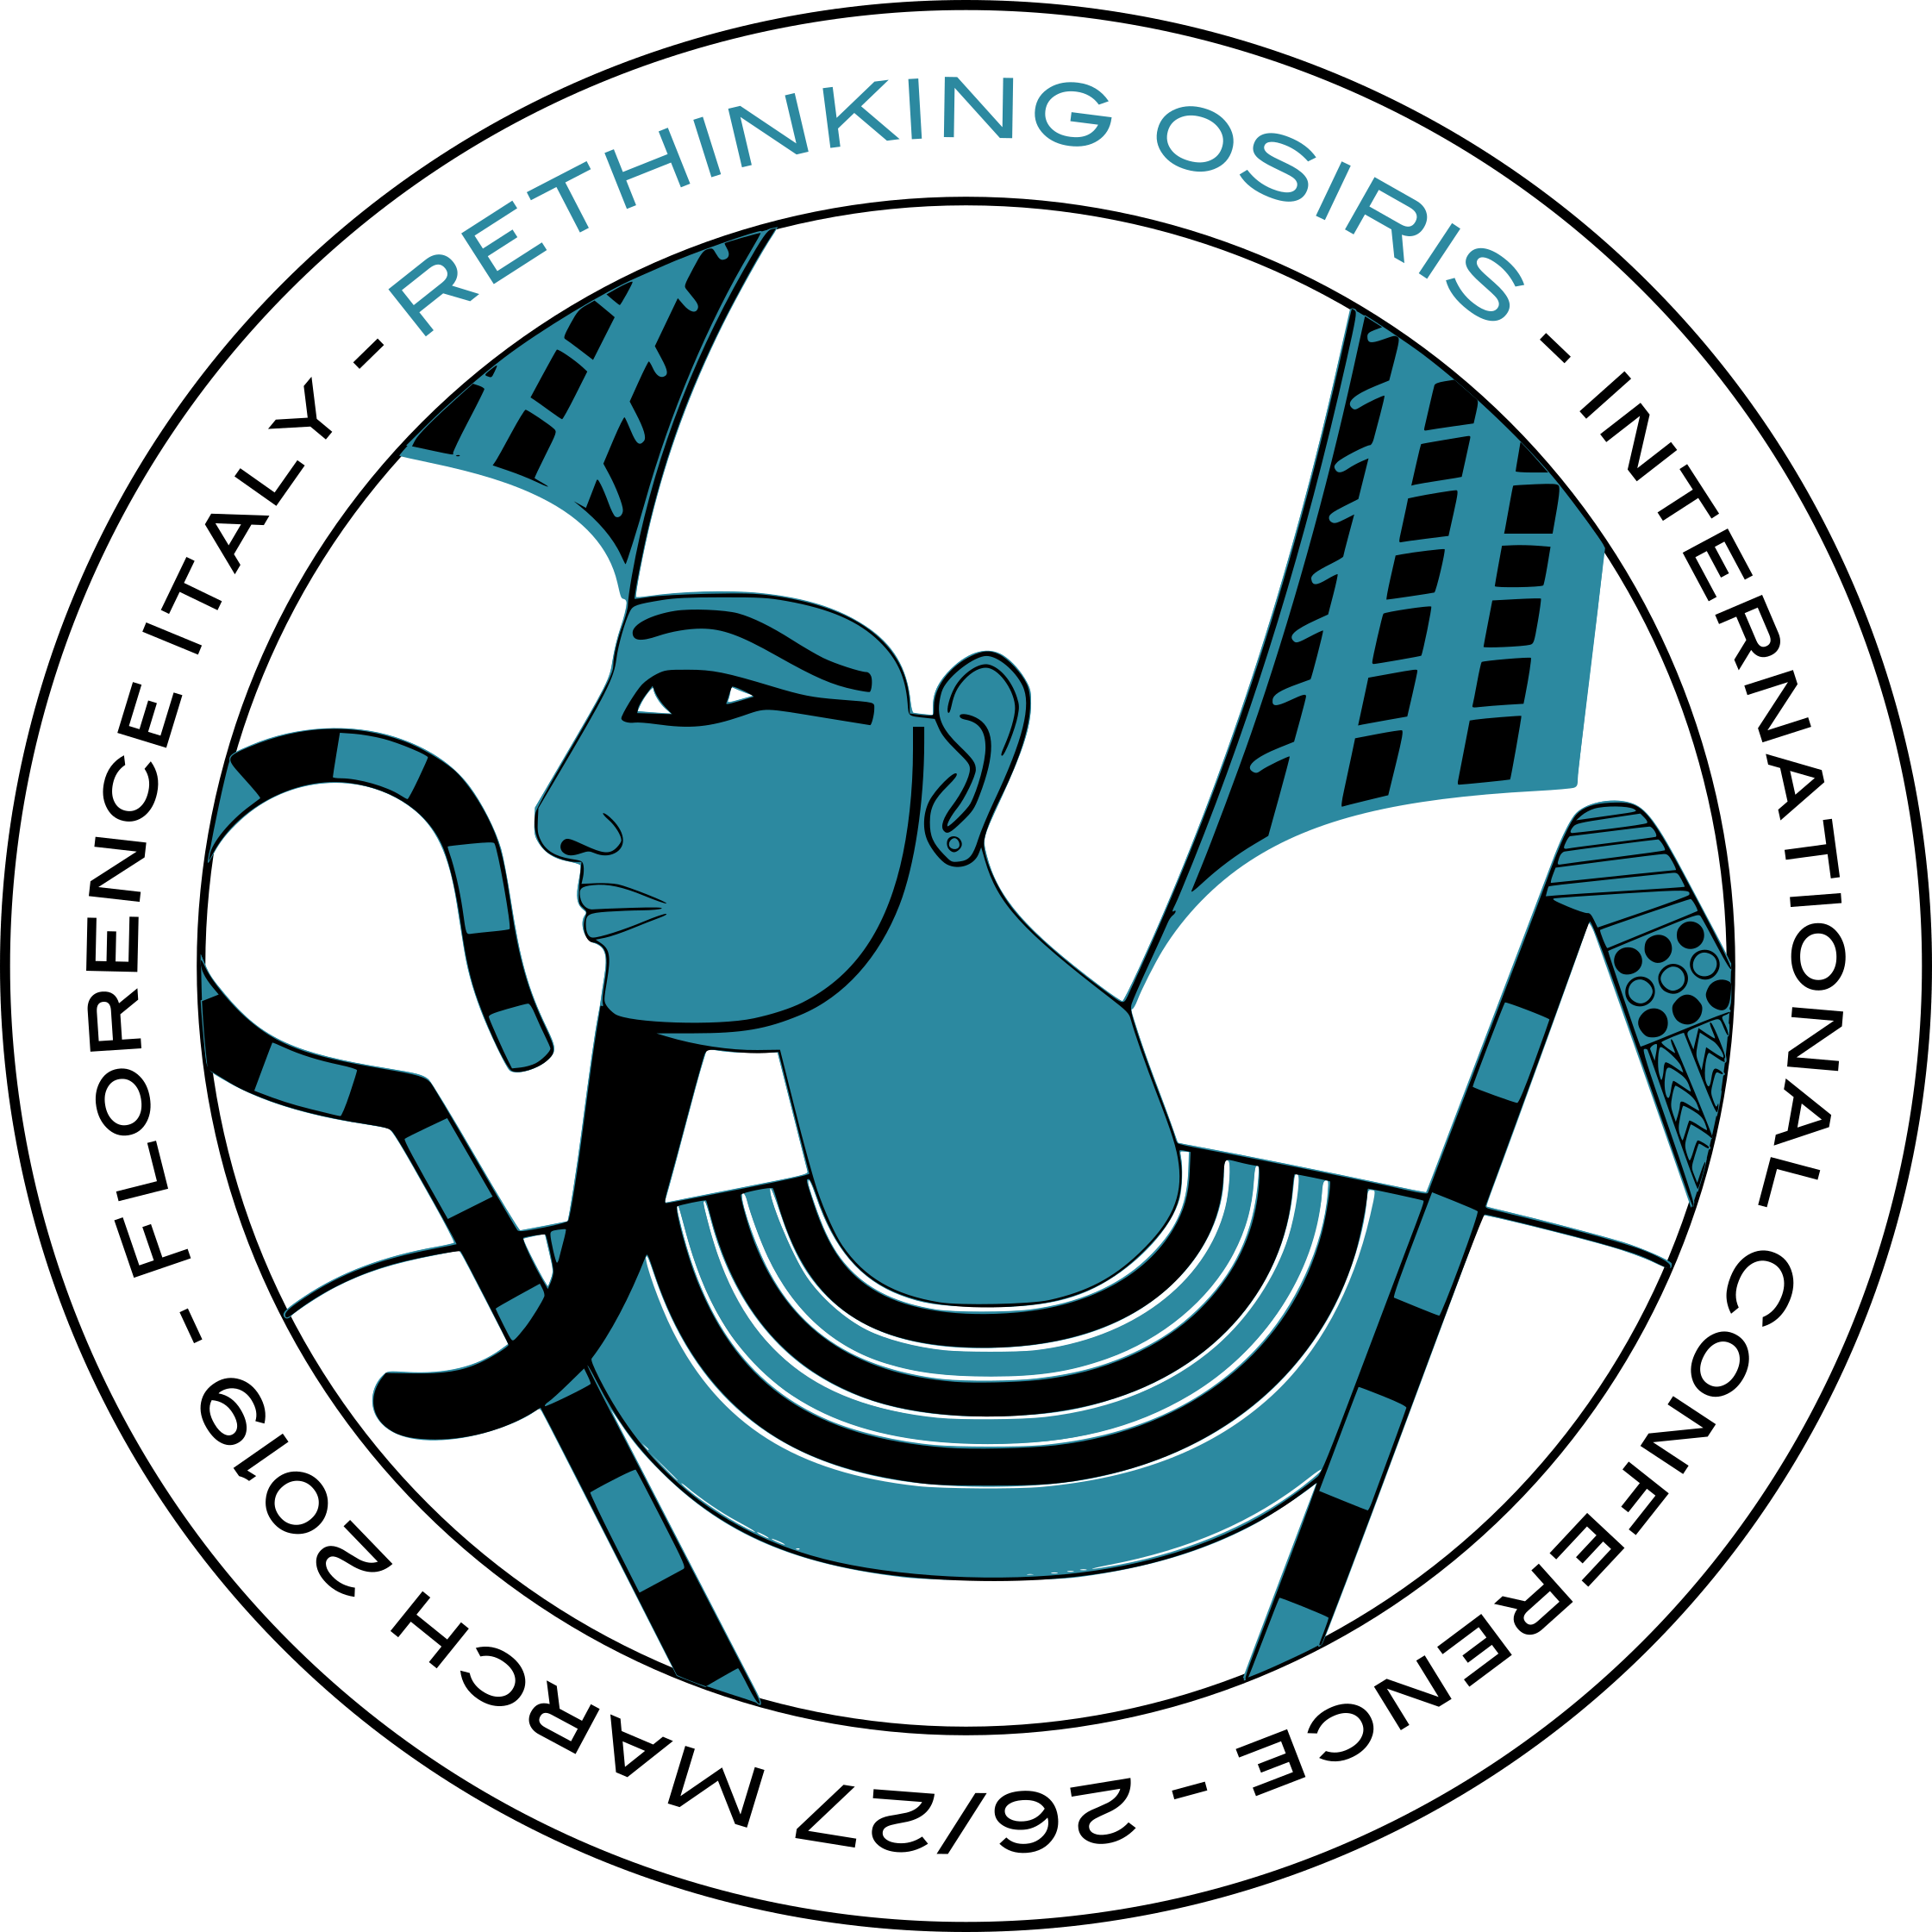 Osiris Logo - Rethinking Osiris